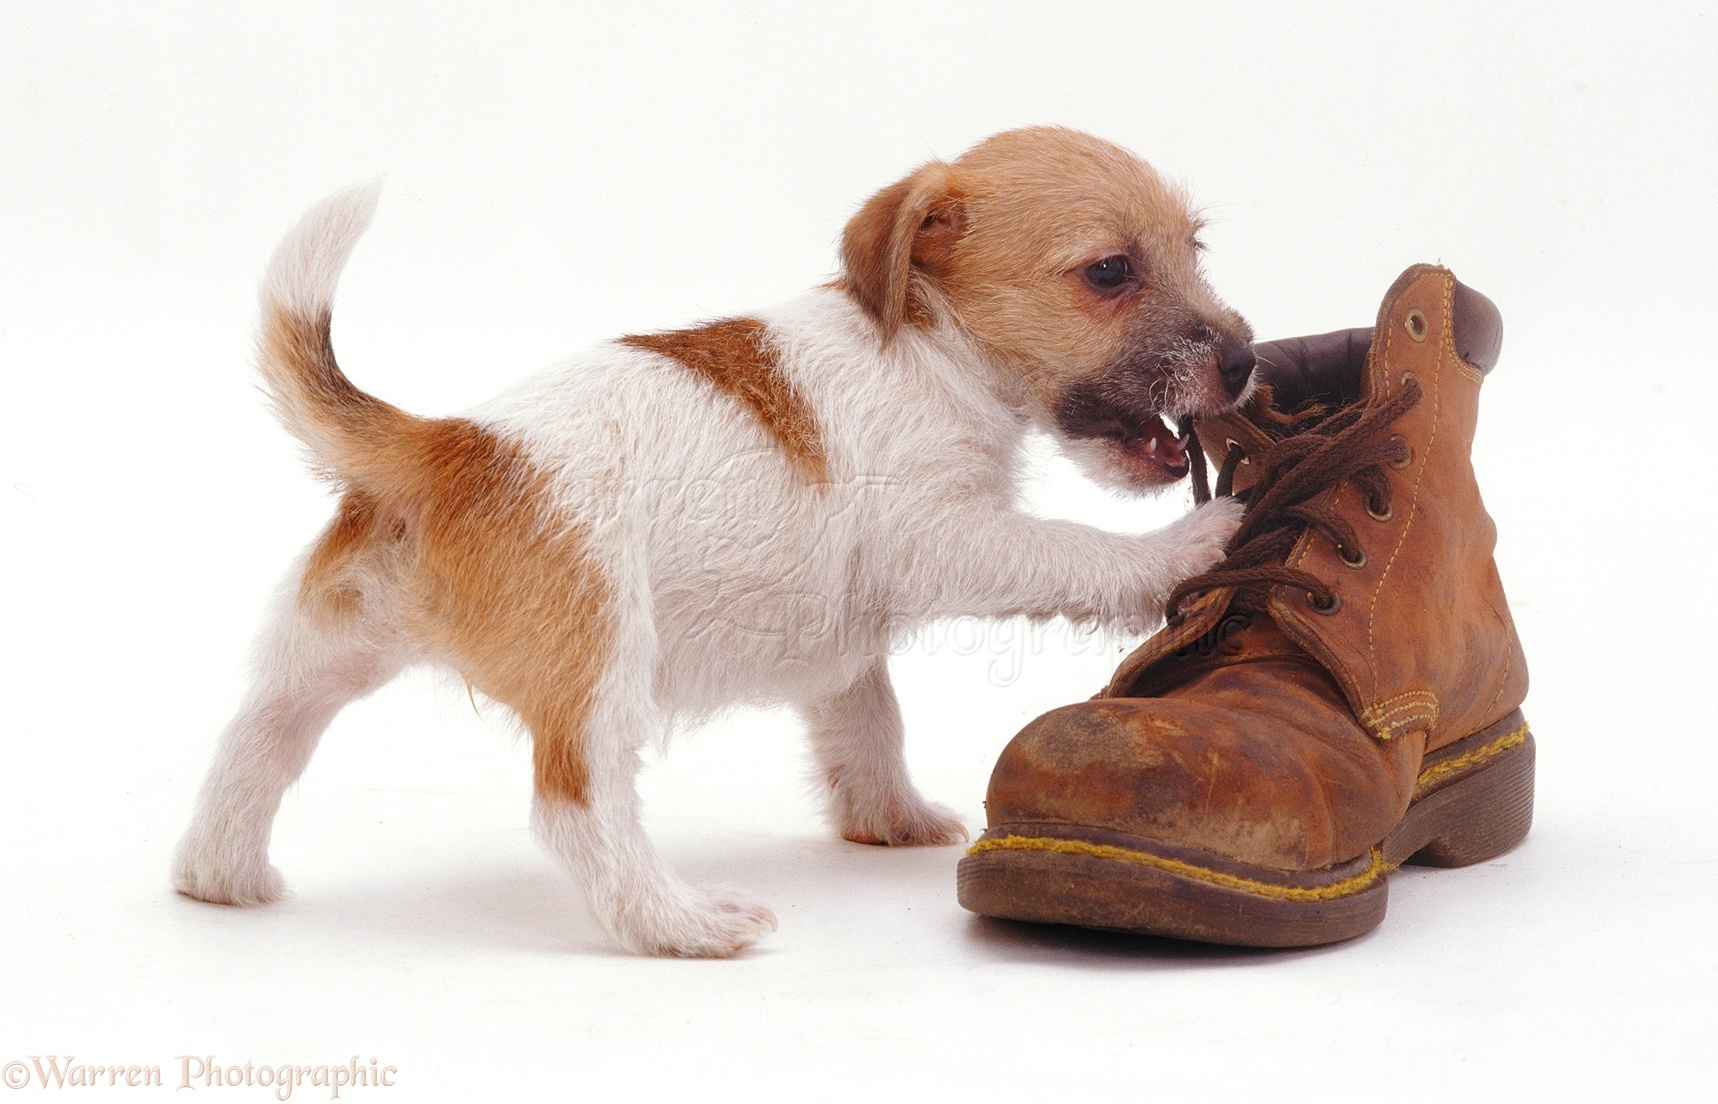 6bcb2beab3d WP08584 Jack Russell Terrier pup Gina inspecting a shoe.